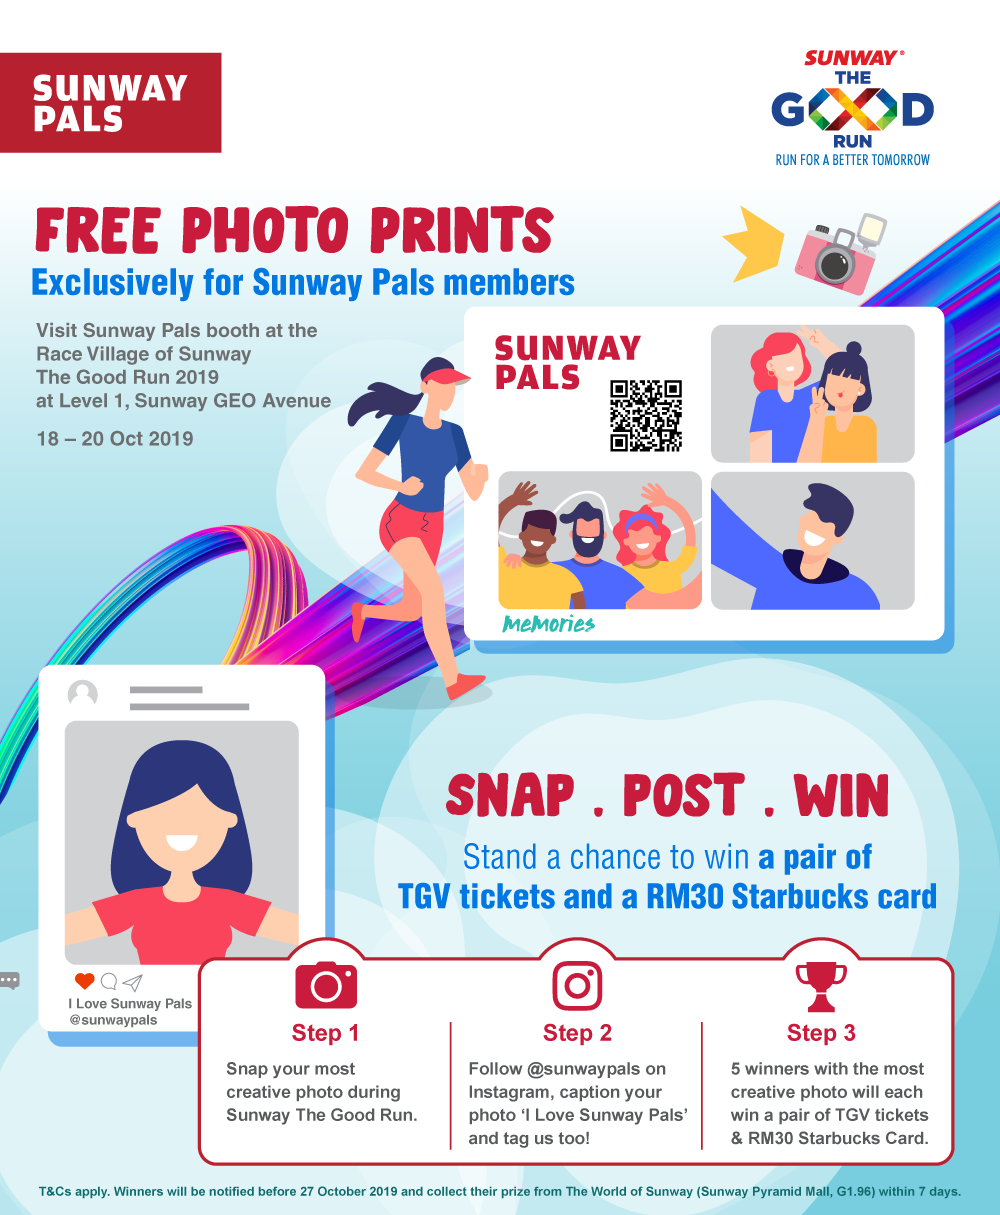 Win a pair of TGV Movie Tickets and a RM30 Starbucks Card!